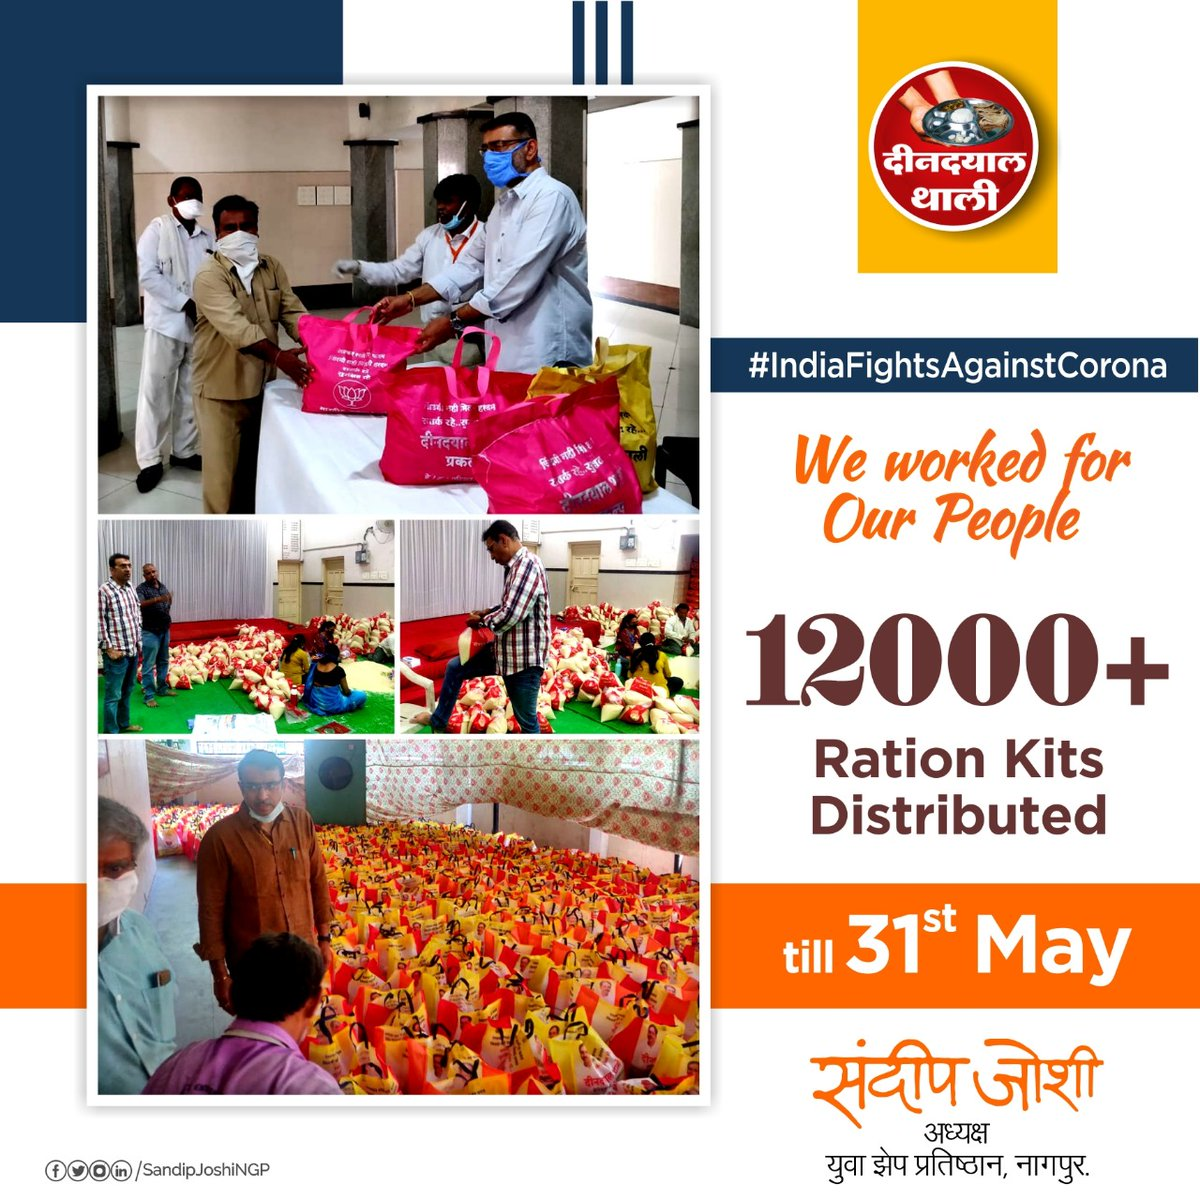 More than 12,000 ration kits were distributed to needy people affected by lockdown till 31st May in Nagpur.   #SandipJoshi #IndiaFightsCorona https://t.co/RaslFnNtpf